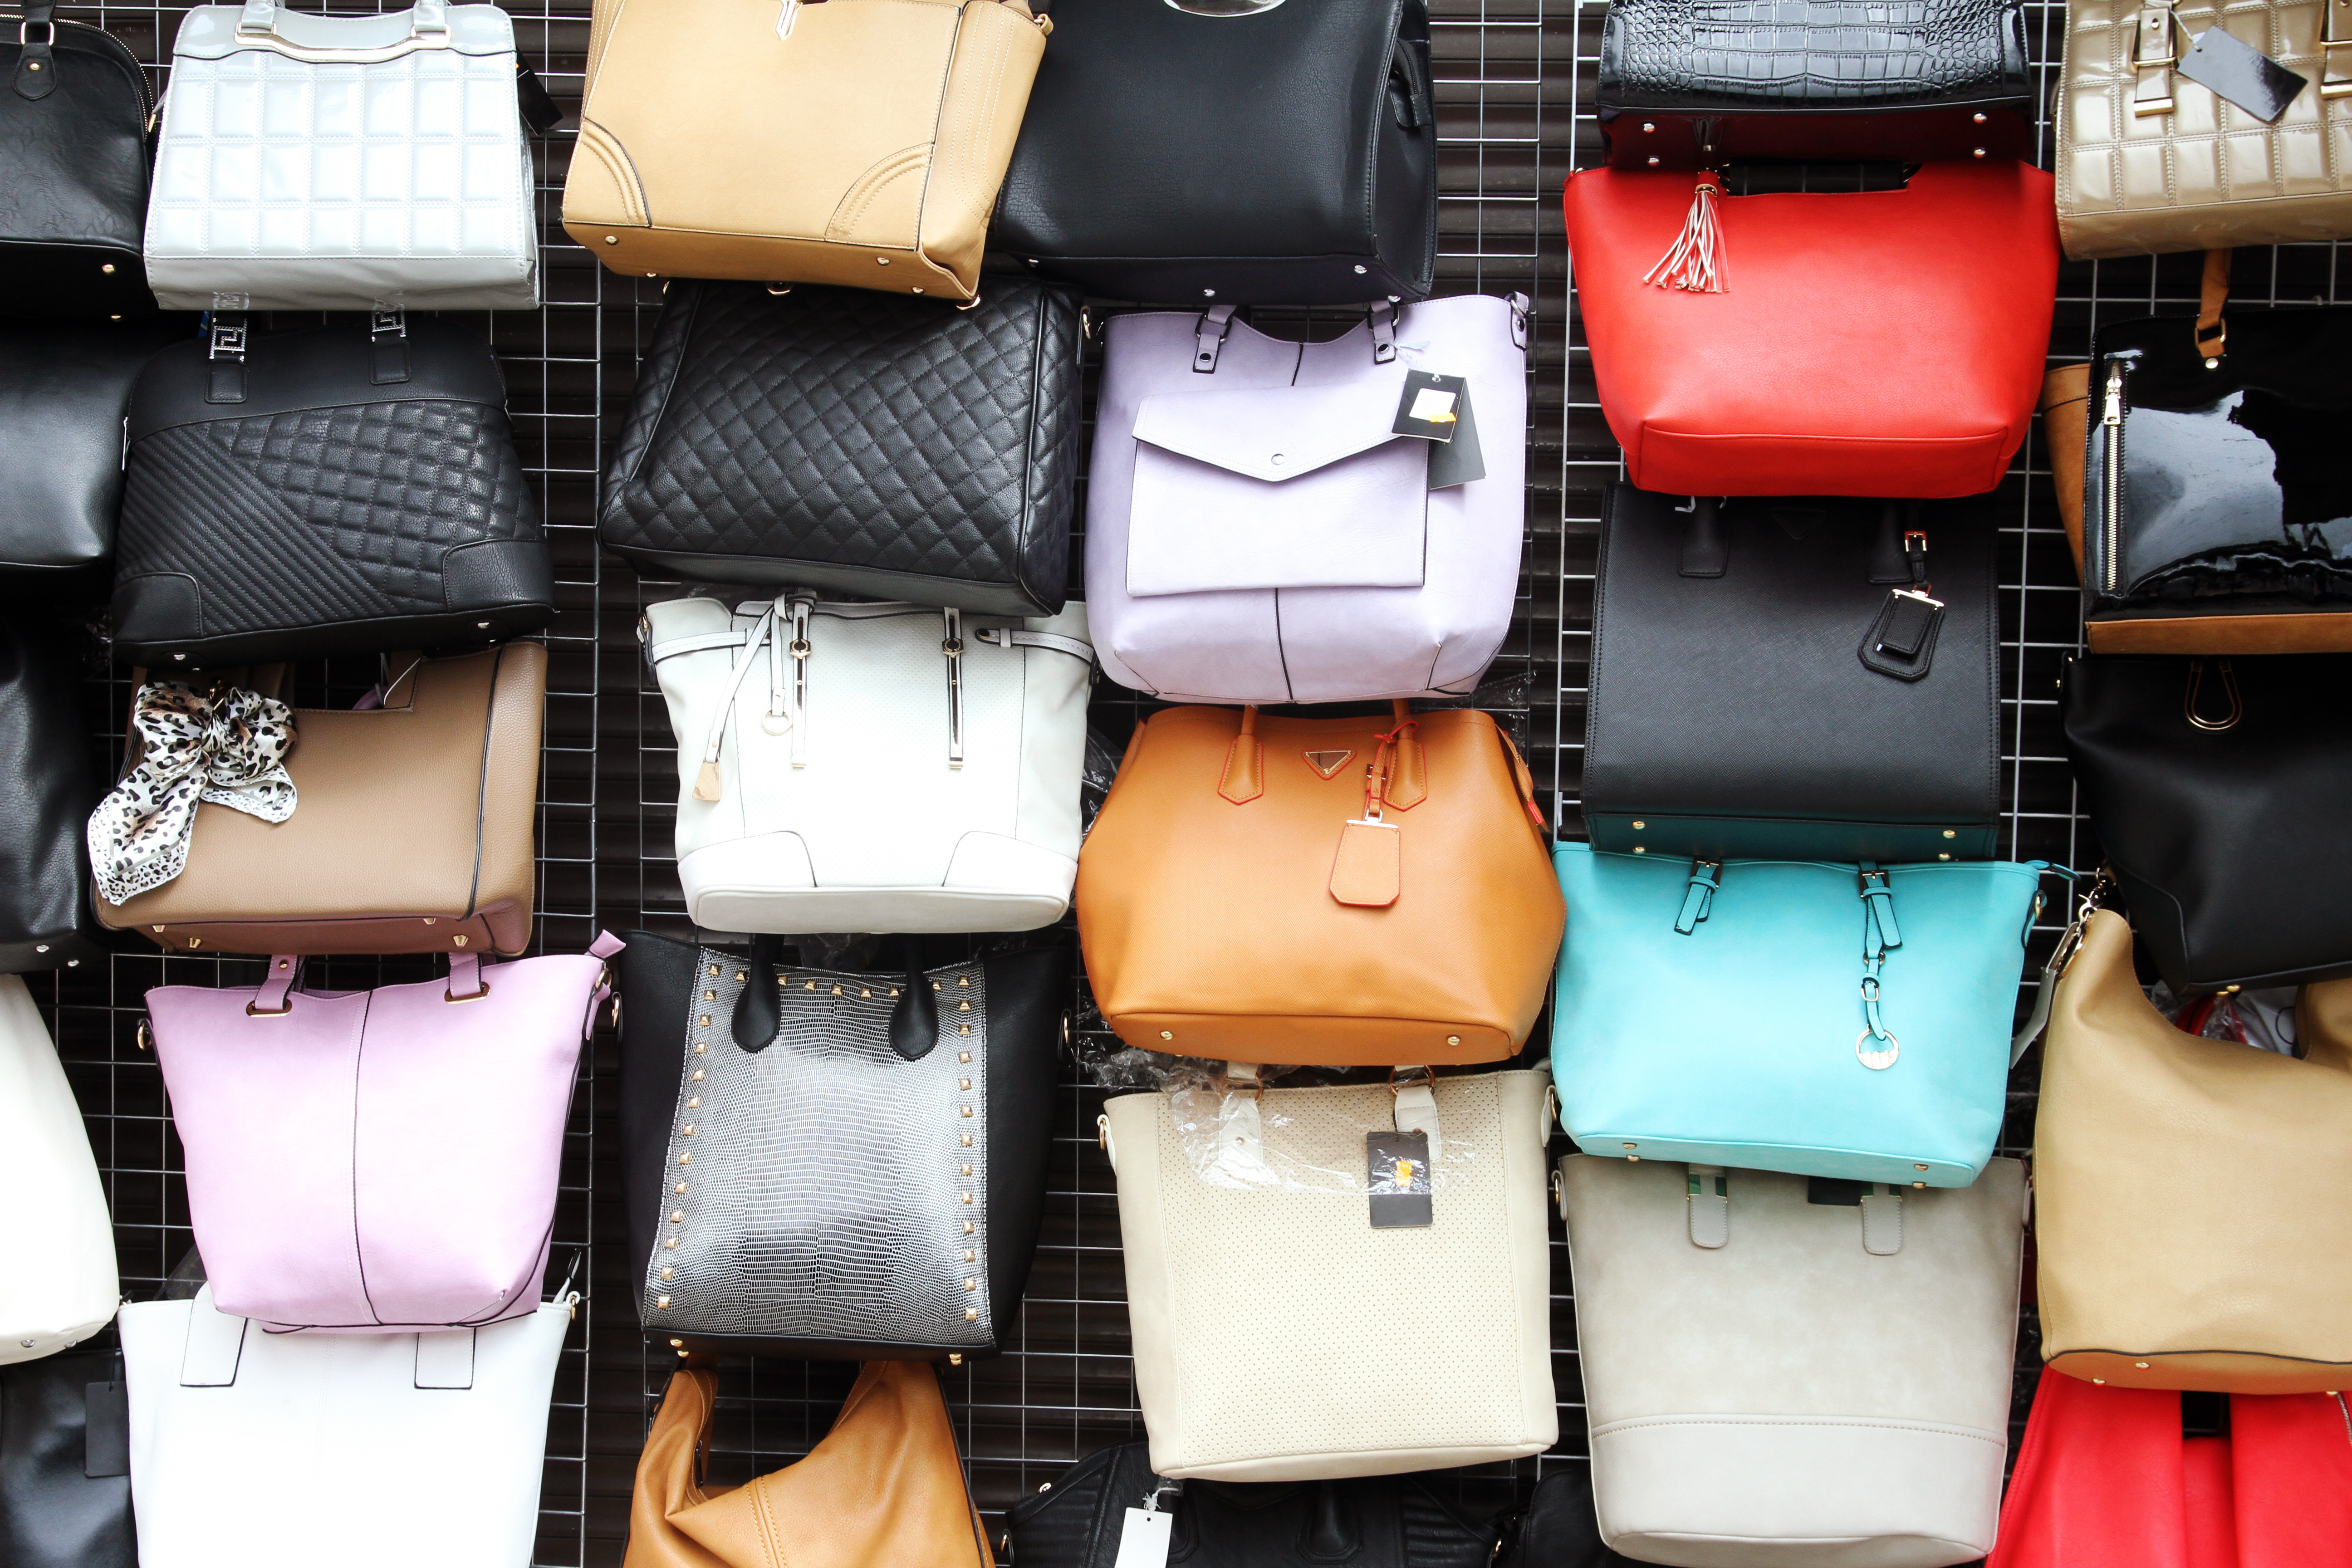 designer duplicates 5 tips for avoiding a counterfeit bag checkworks. Black Bedroom Furniture Sets. Home Design Ideas